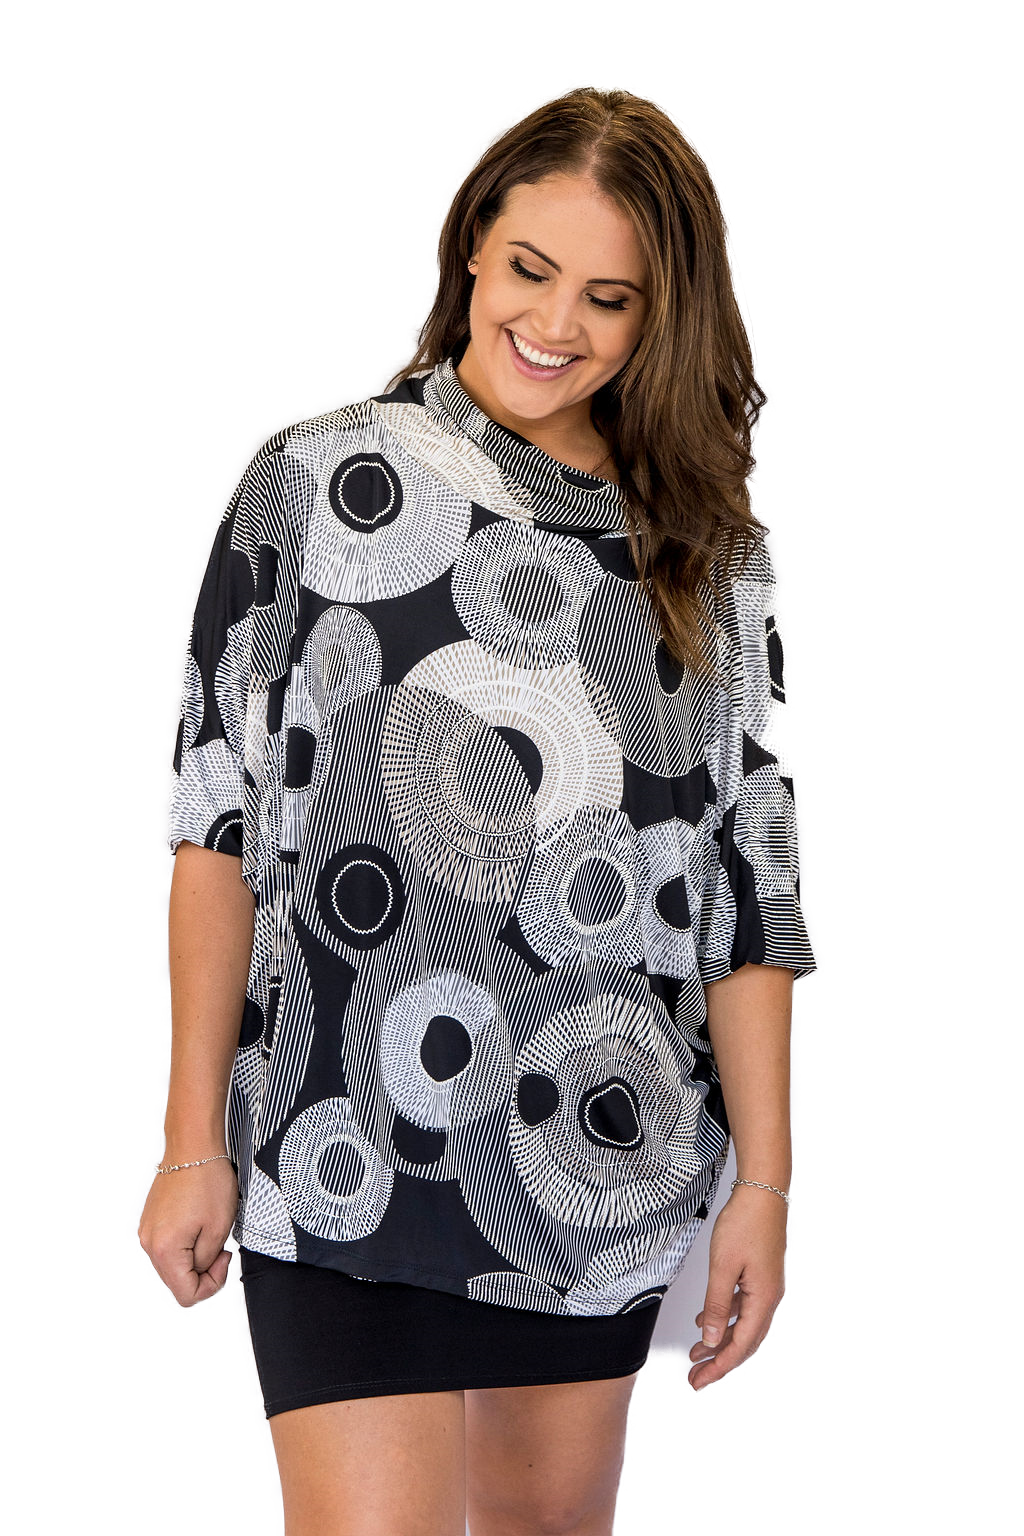 sallyannelyonscreativeclothingsolutionsforwomen2019_123_InPixio.png